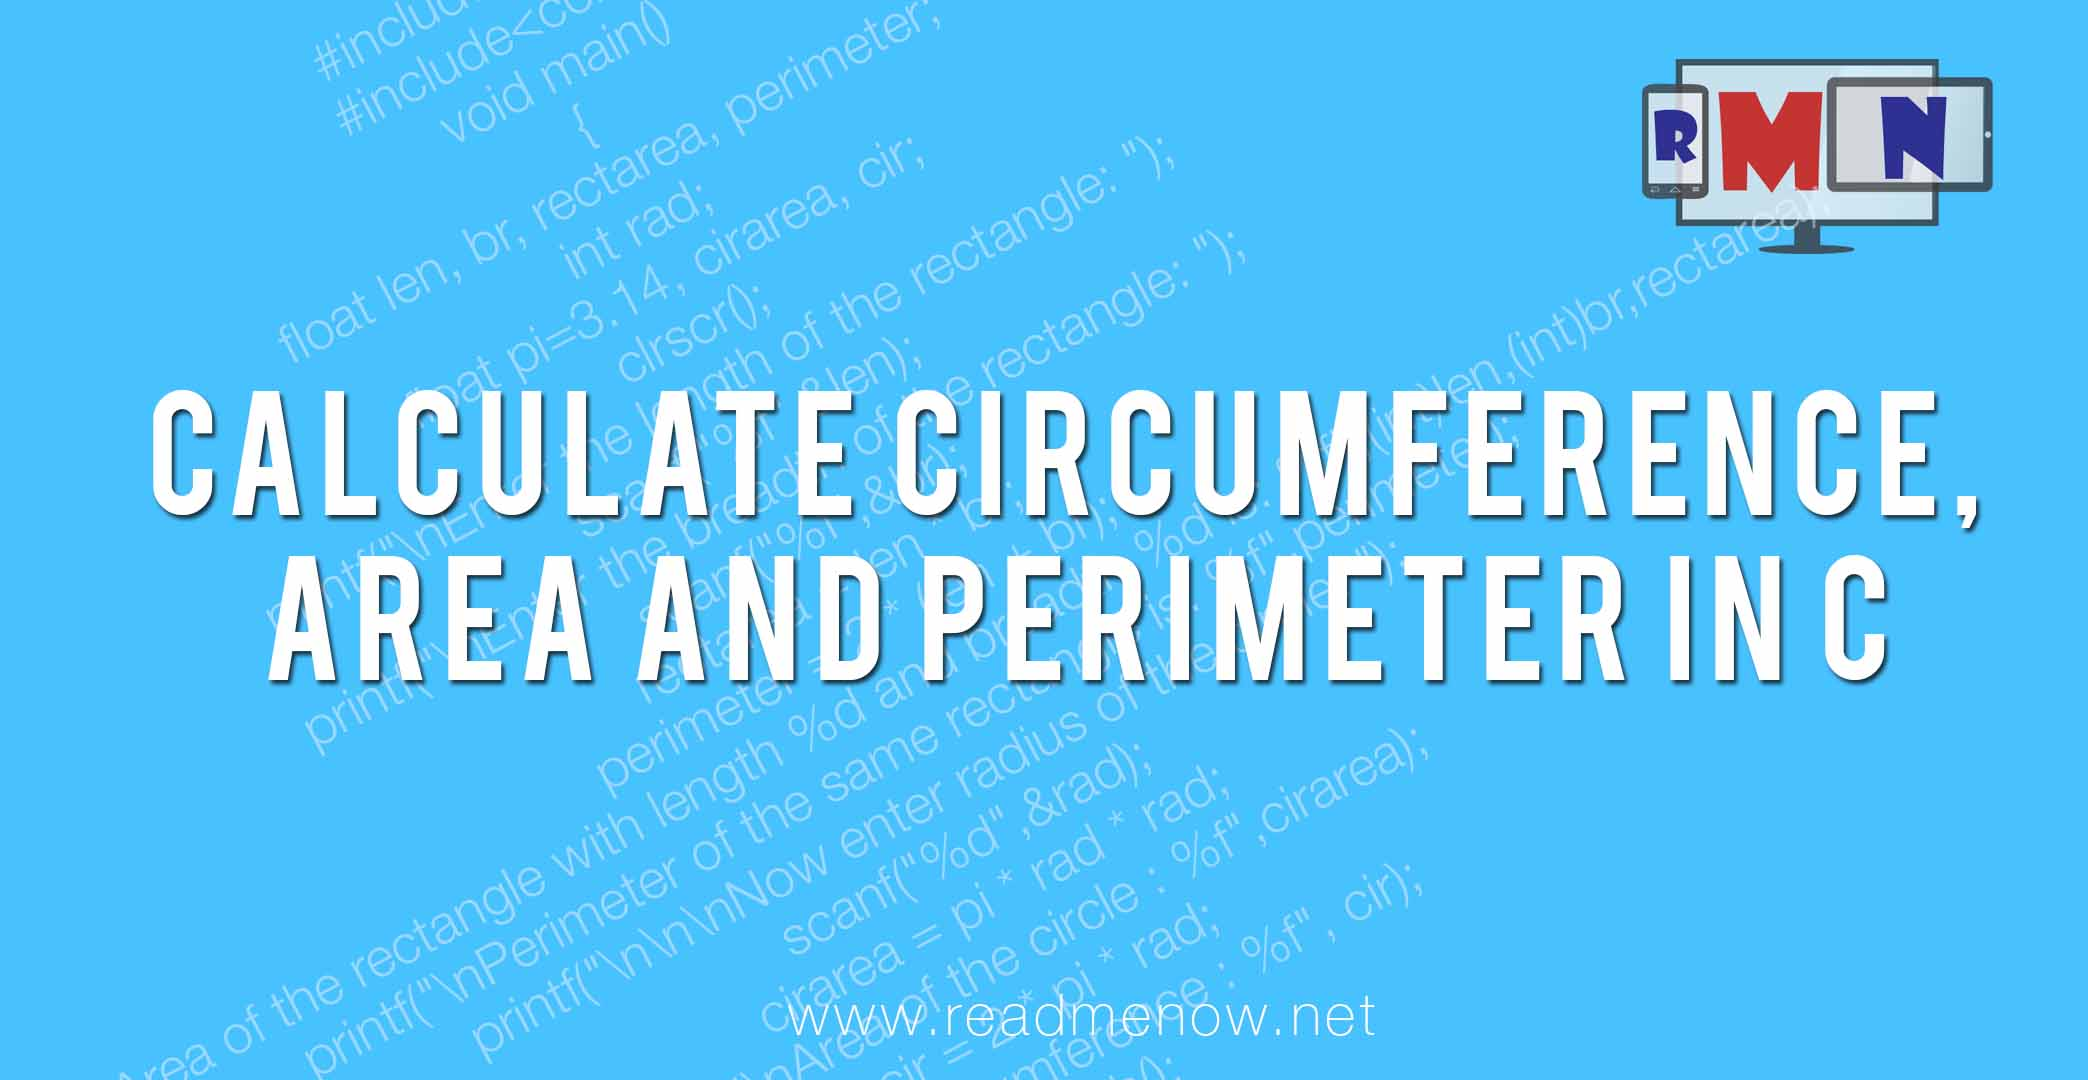 Calculate circumference, area and perimeter of a rectangle in C